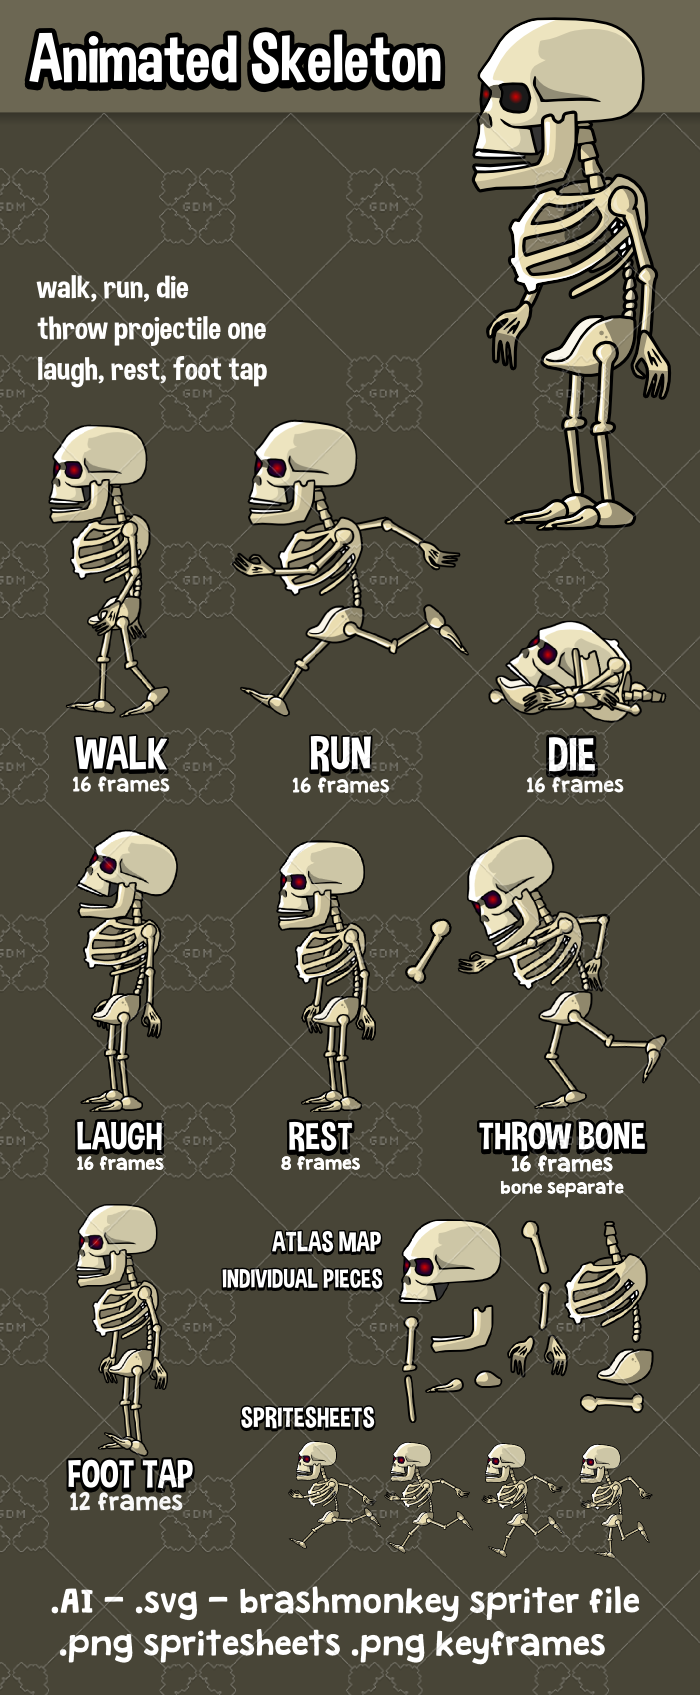 Animated skeleton